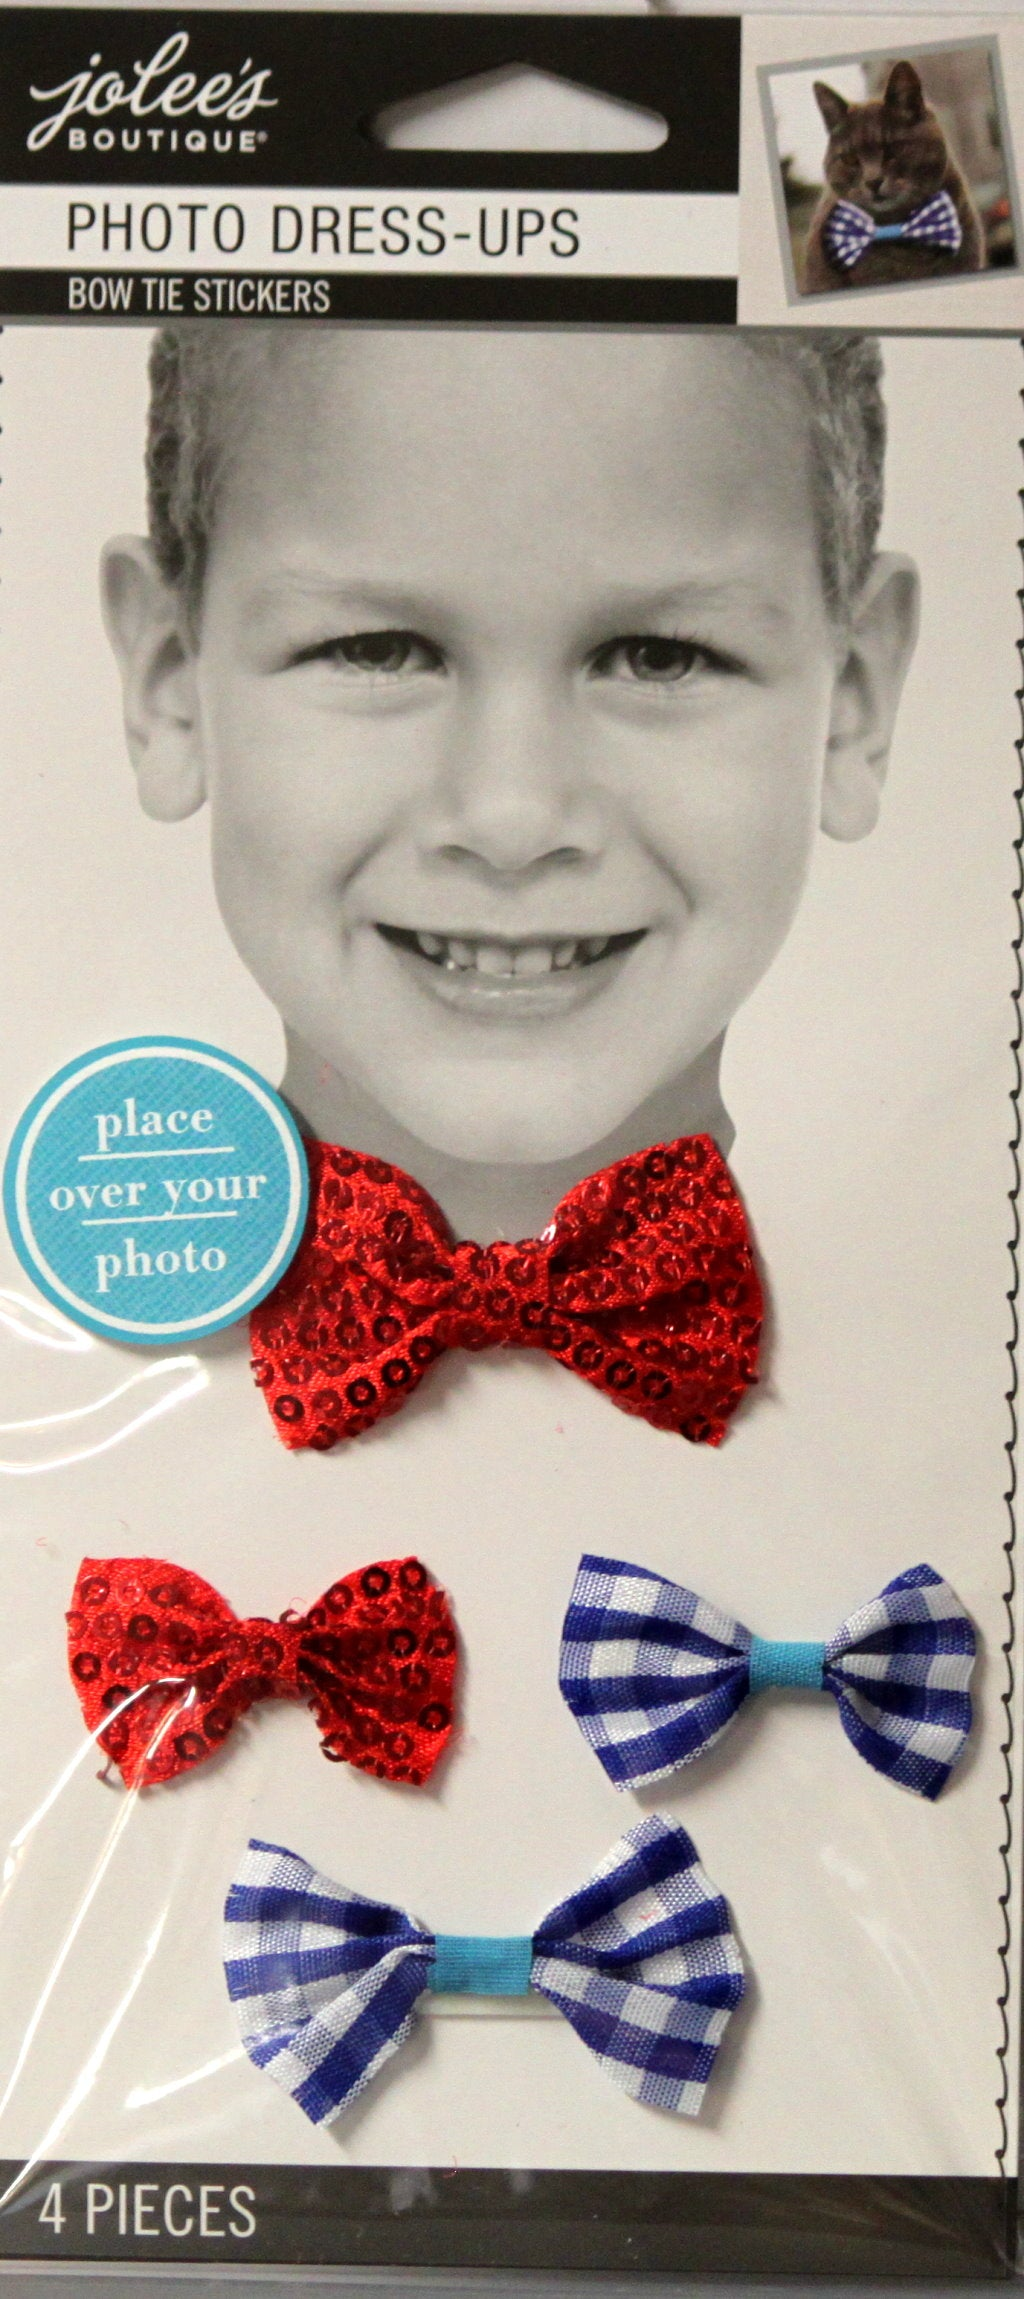 Jolee's Boutique Photo Dress-Ups Bow Ties Dimensional Scrapbook Stickers